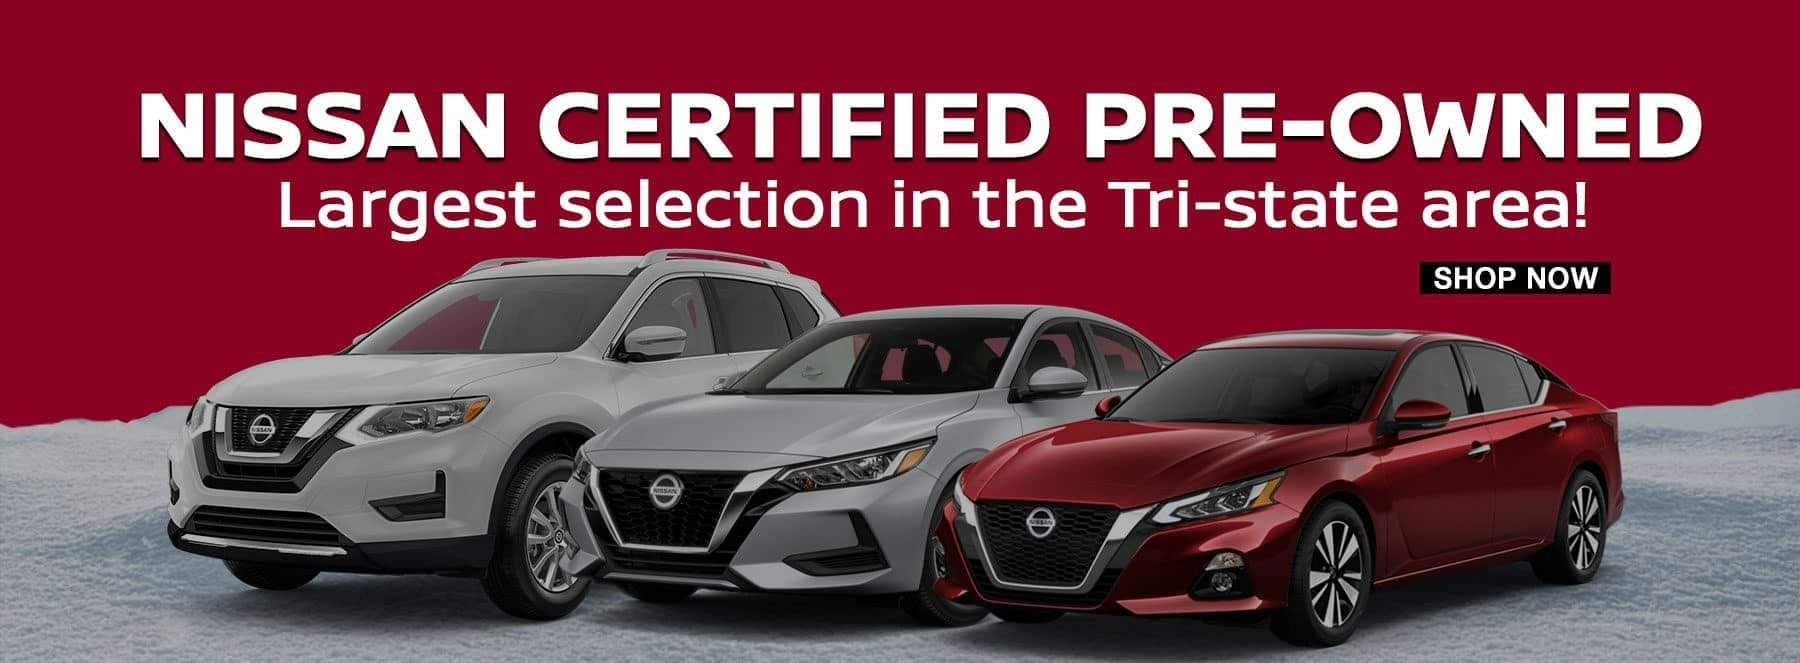 NISSAN-PREOWNED-CERT-1800×663